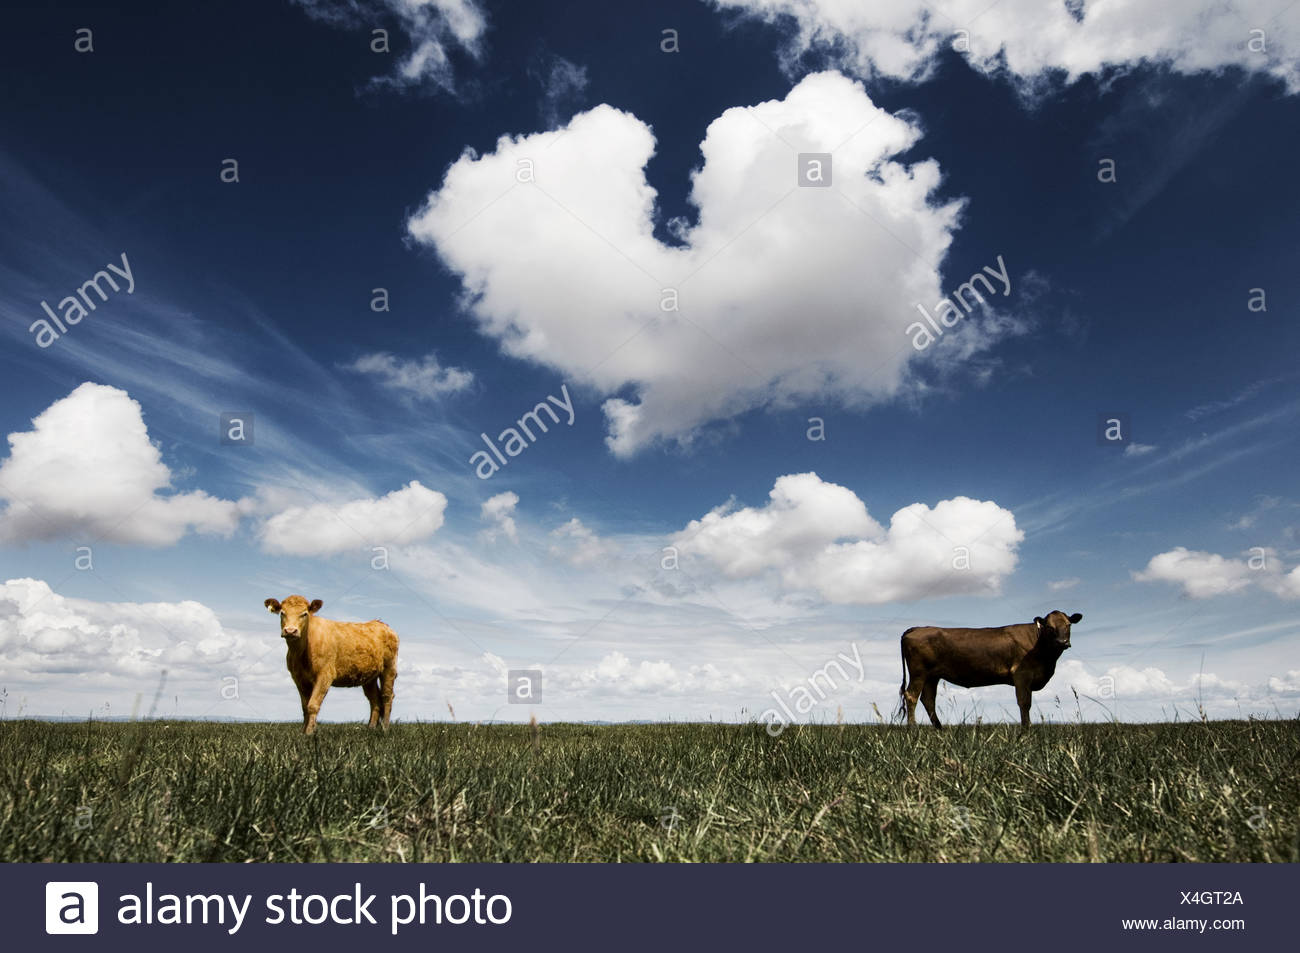 Two cows in field - Stock Image